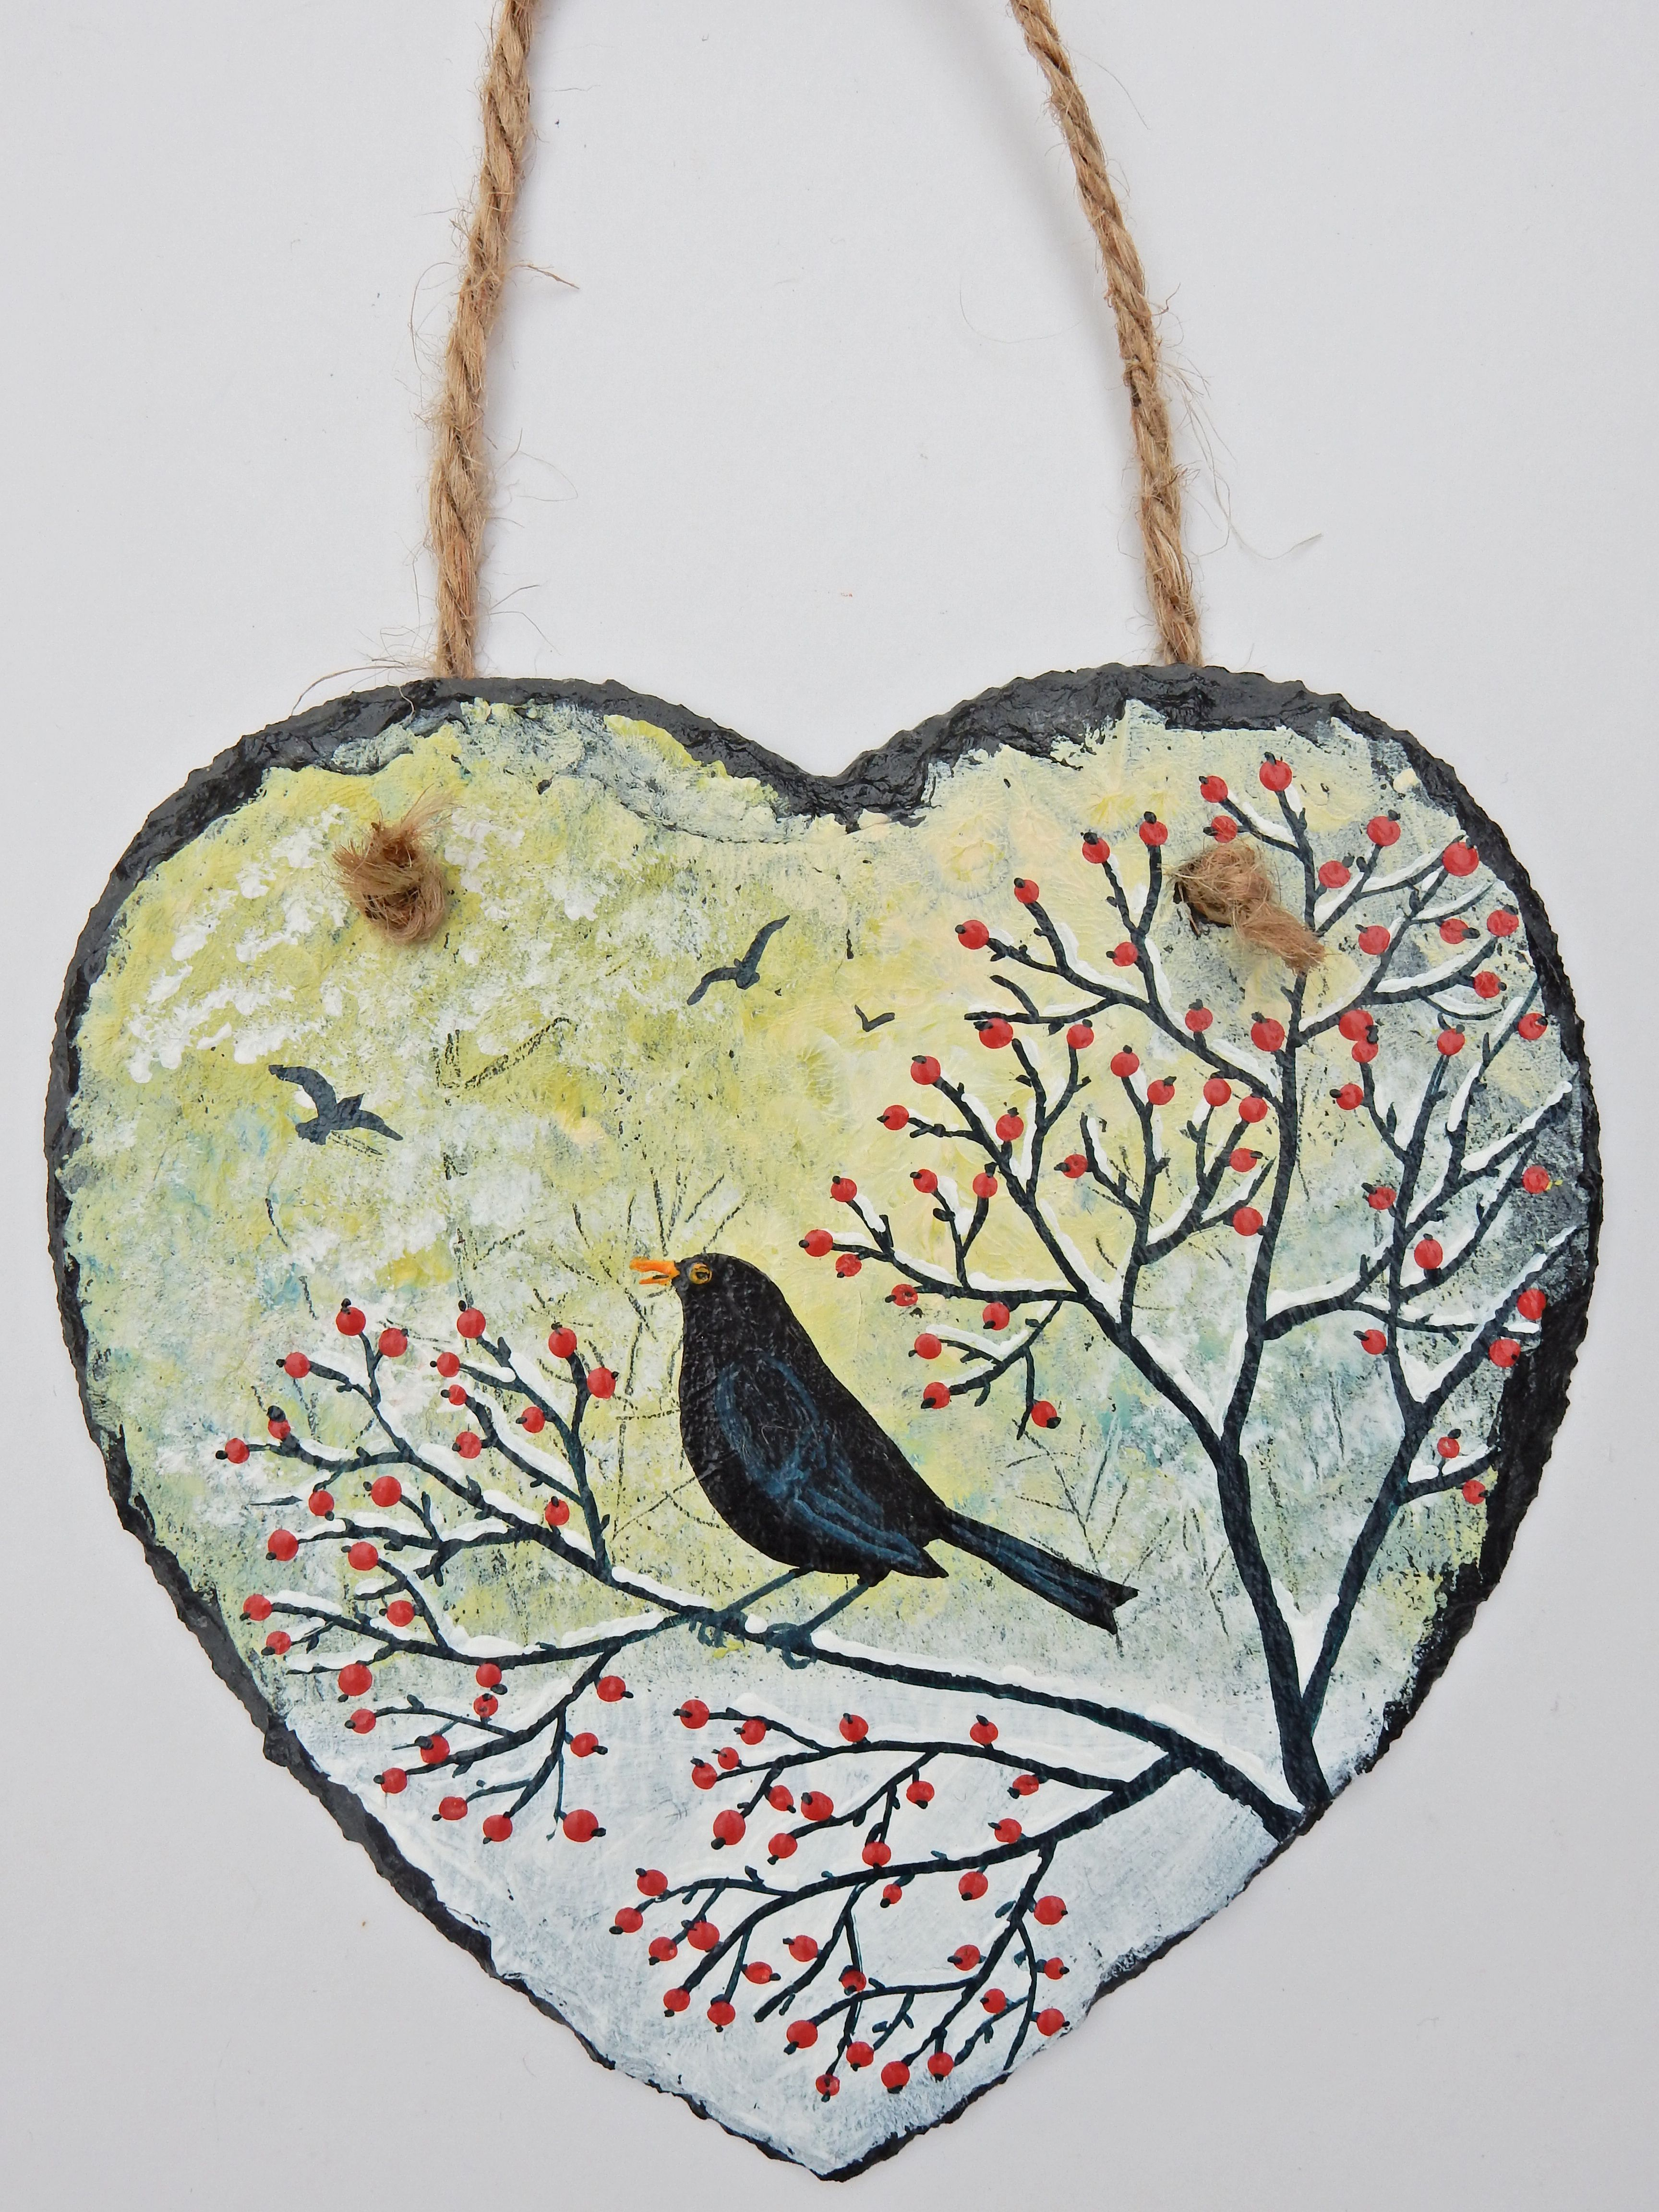 Singing in the Snow - acrylic on a 6 inch slate heart (SOLD)